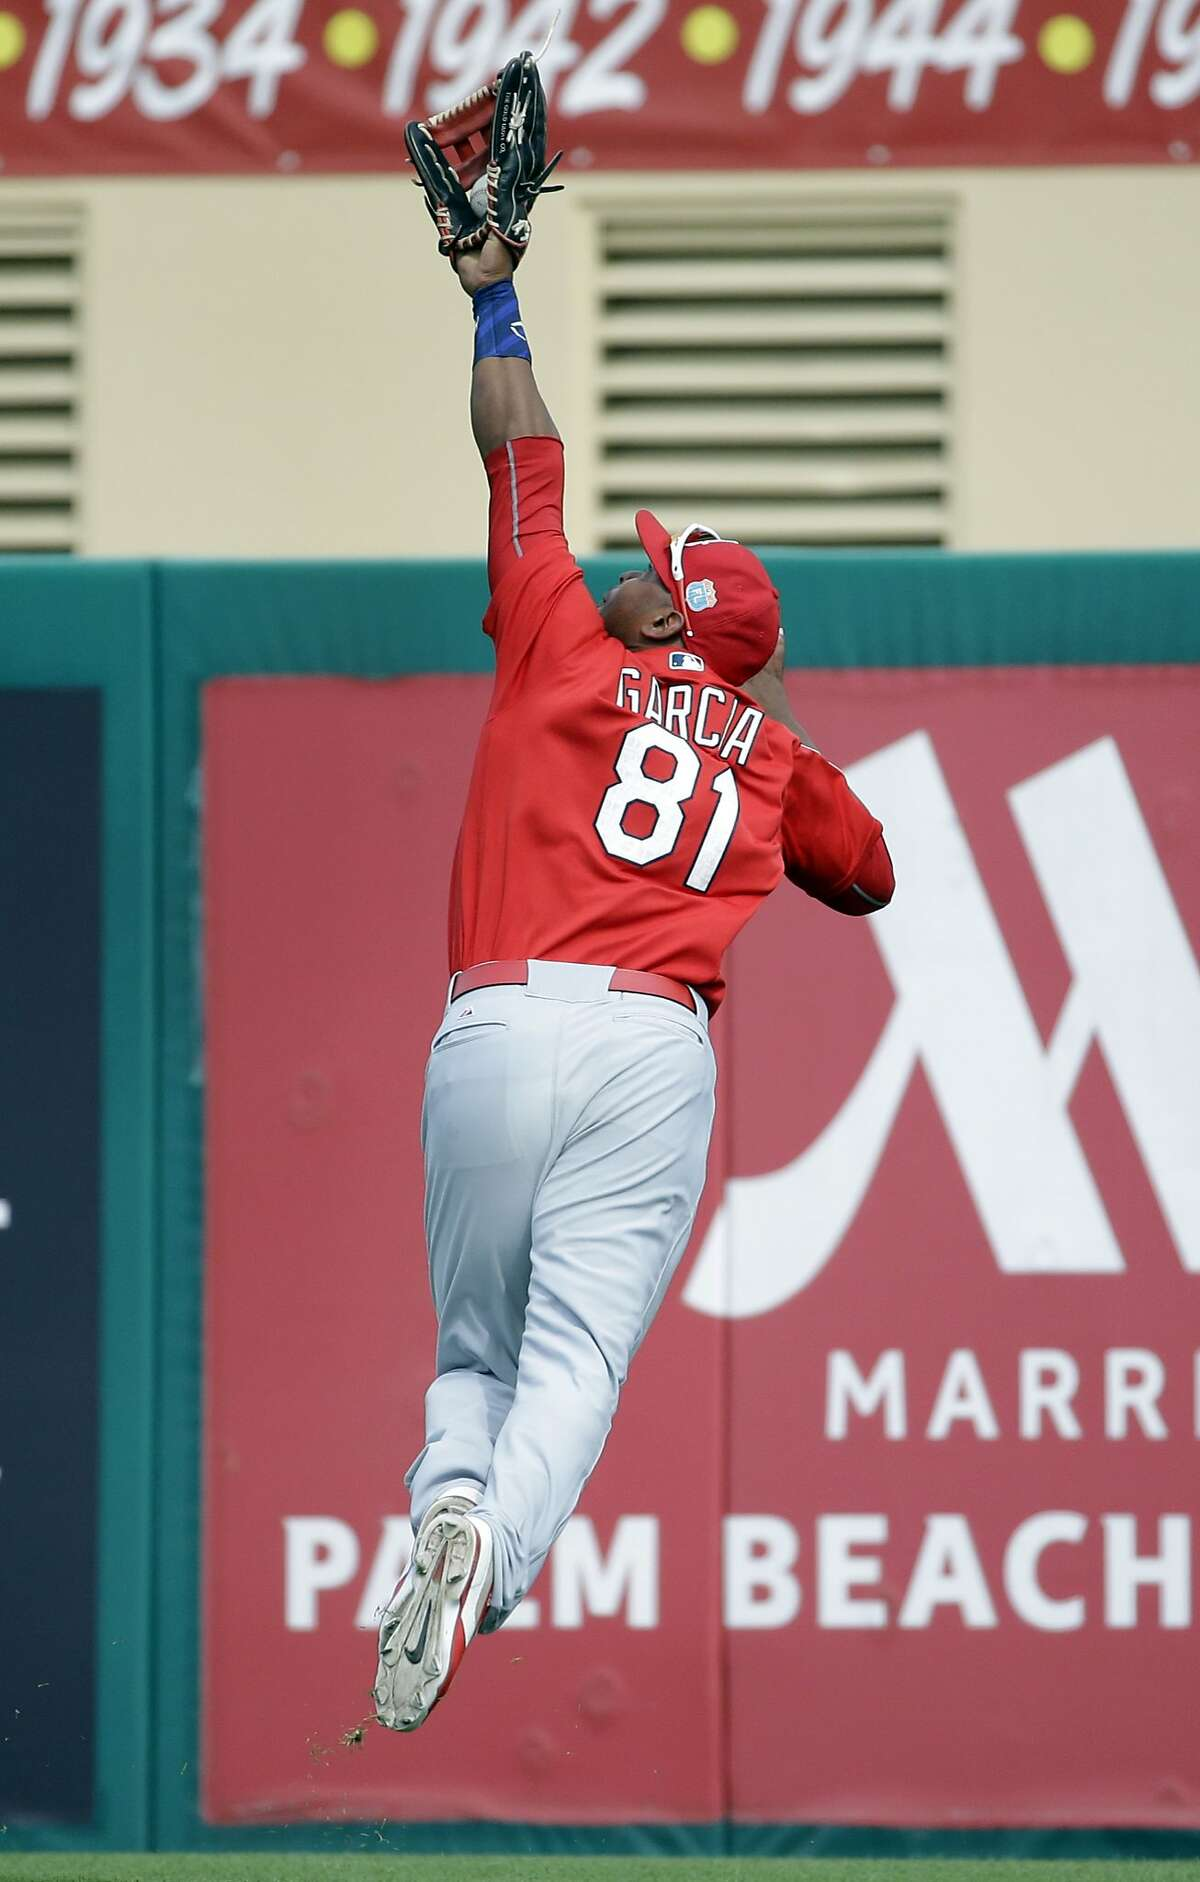 St. Louis Cardinals right fielder Anthony Garcia leaps into the air to catch a ball hit by Miami Marlins' Dan Black for an out during the sixth inning of an exhibition spring training baseball game Saturday, March 5, 2016, in Jupiter, Fla. (AP Photo/Jeff Roberson)